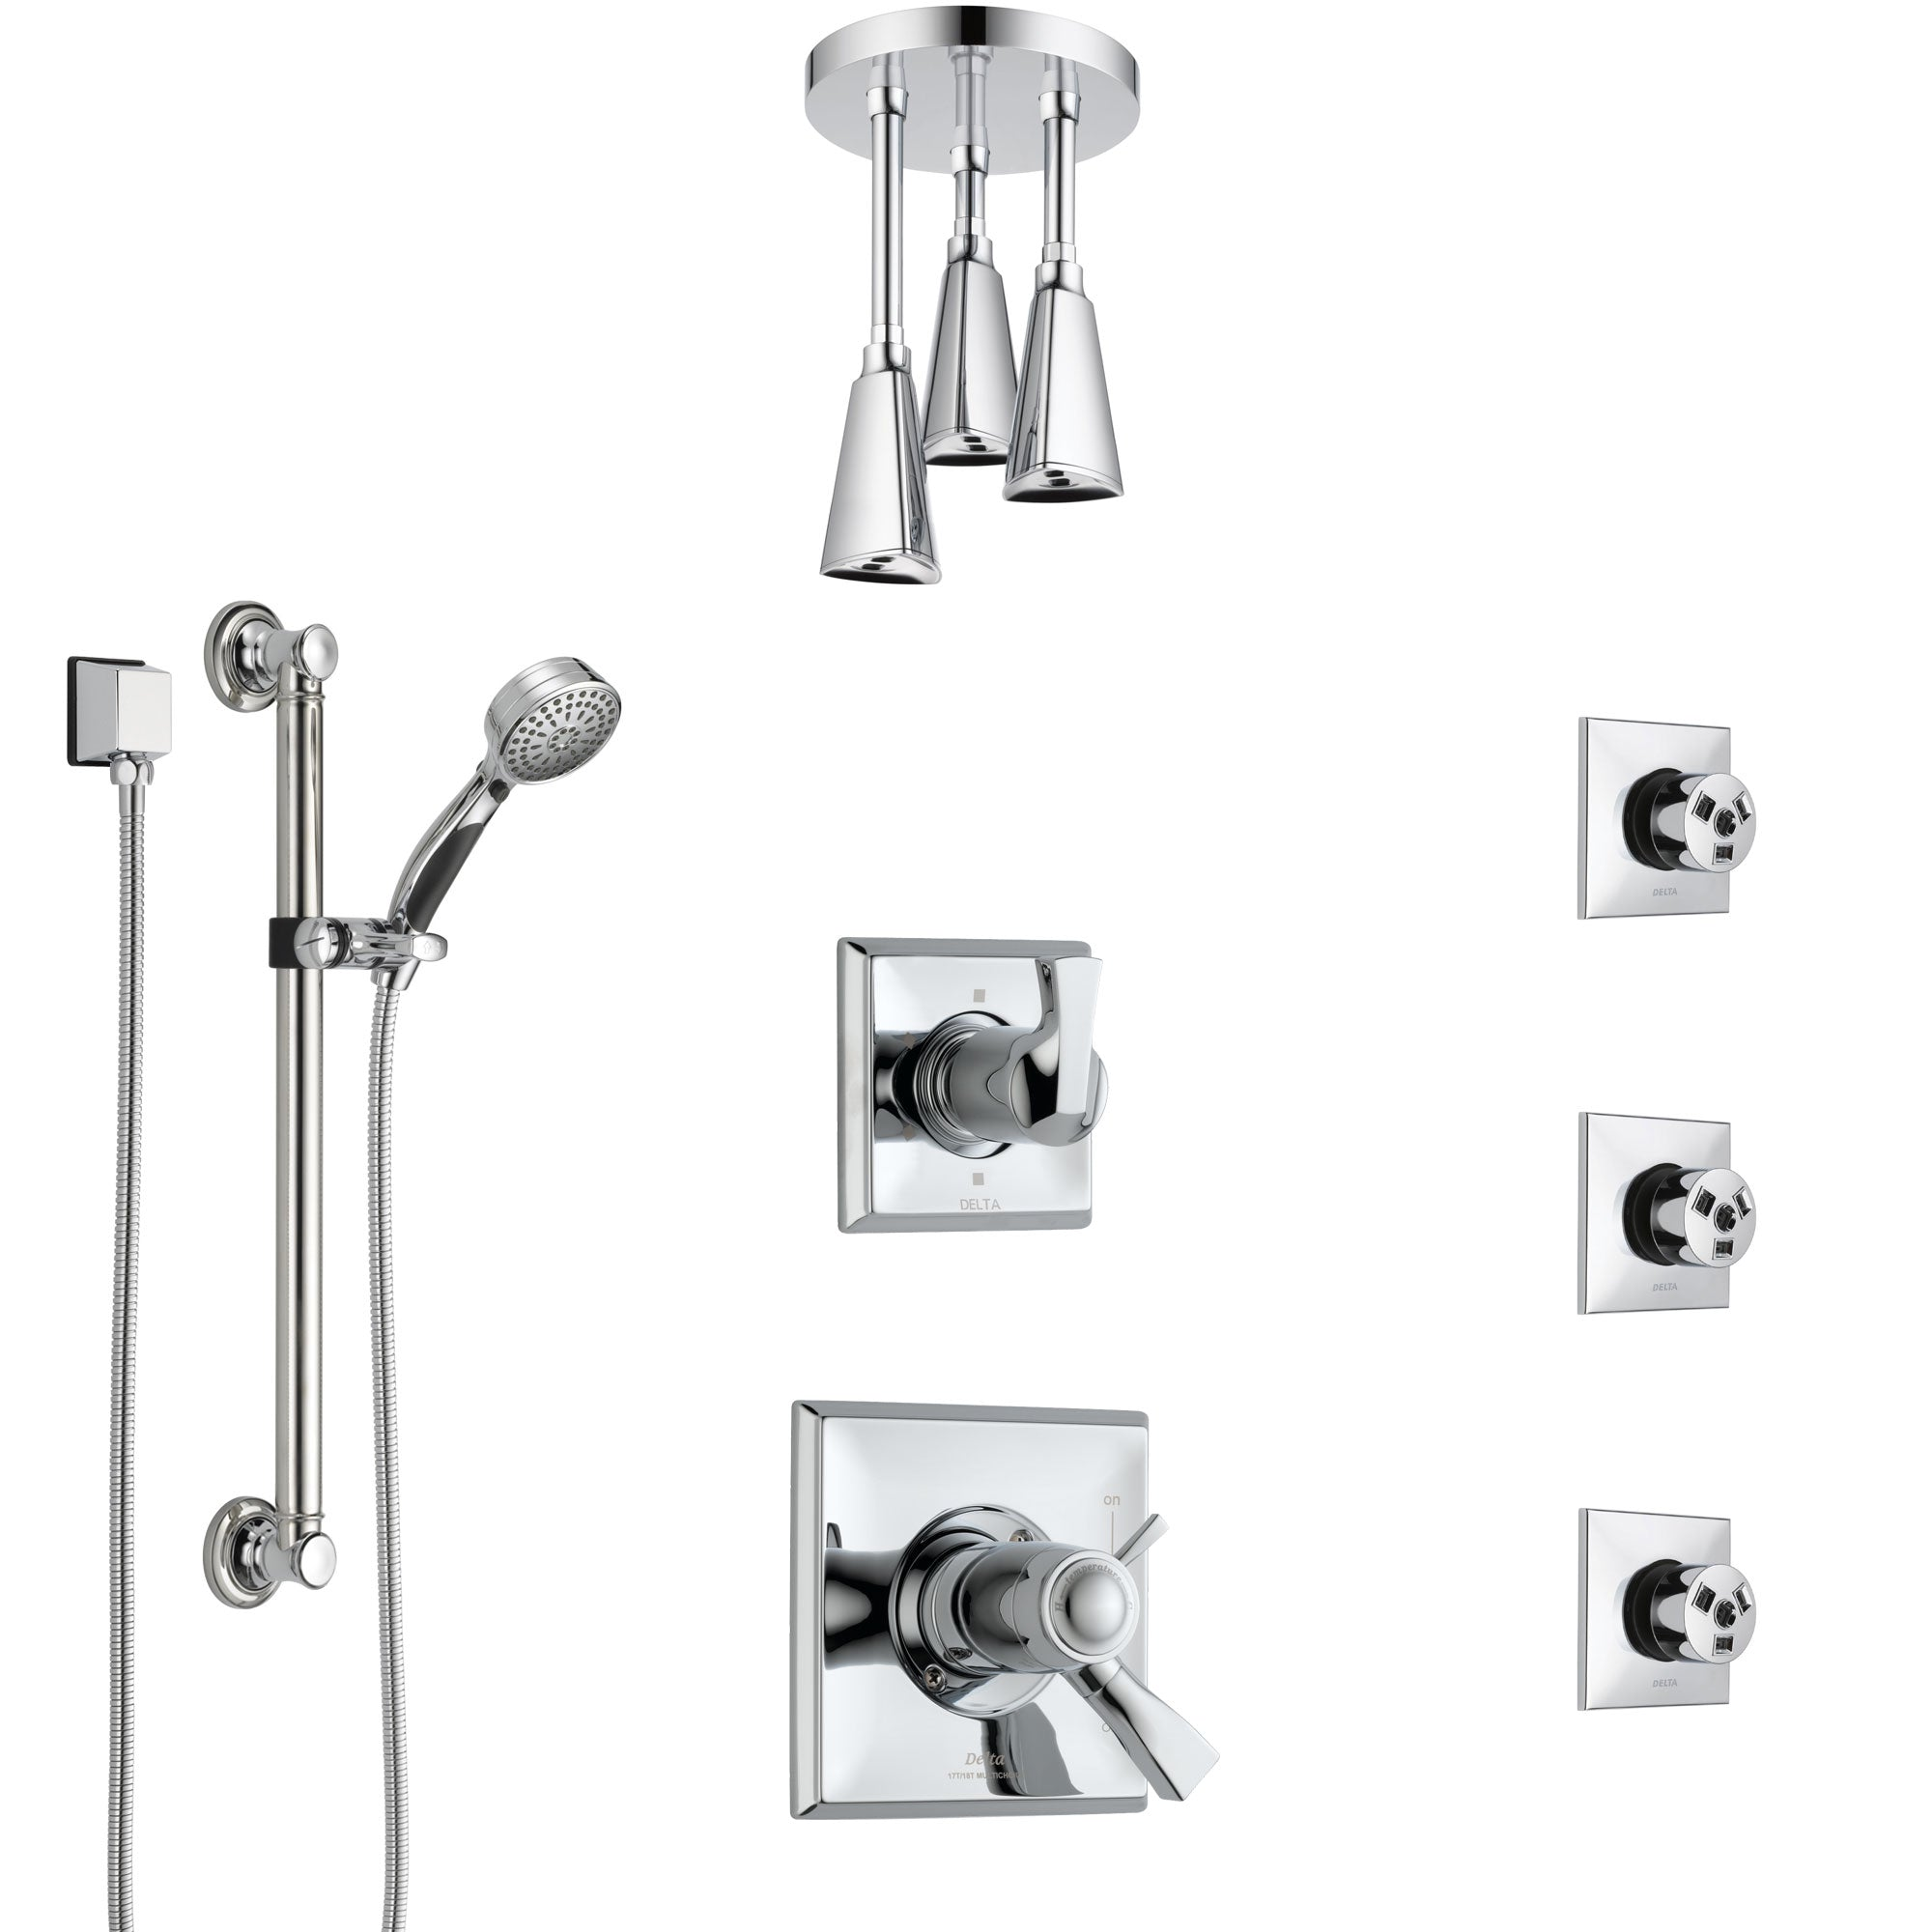 Delta Dryden Chrome Shower System with Dual Thermostatic Control, Diverter, Ceiling Showerhead, 3 Body Sprays, and Grab Bar Hand Shower SS17T5123